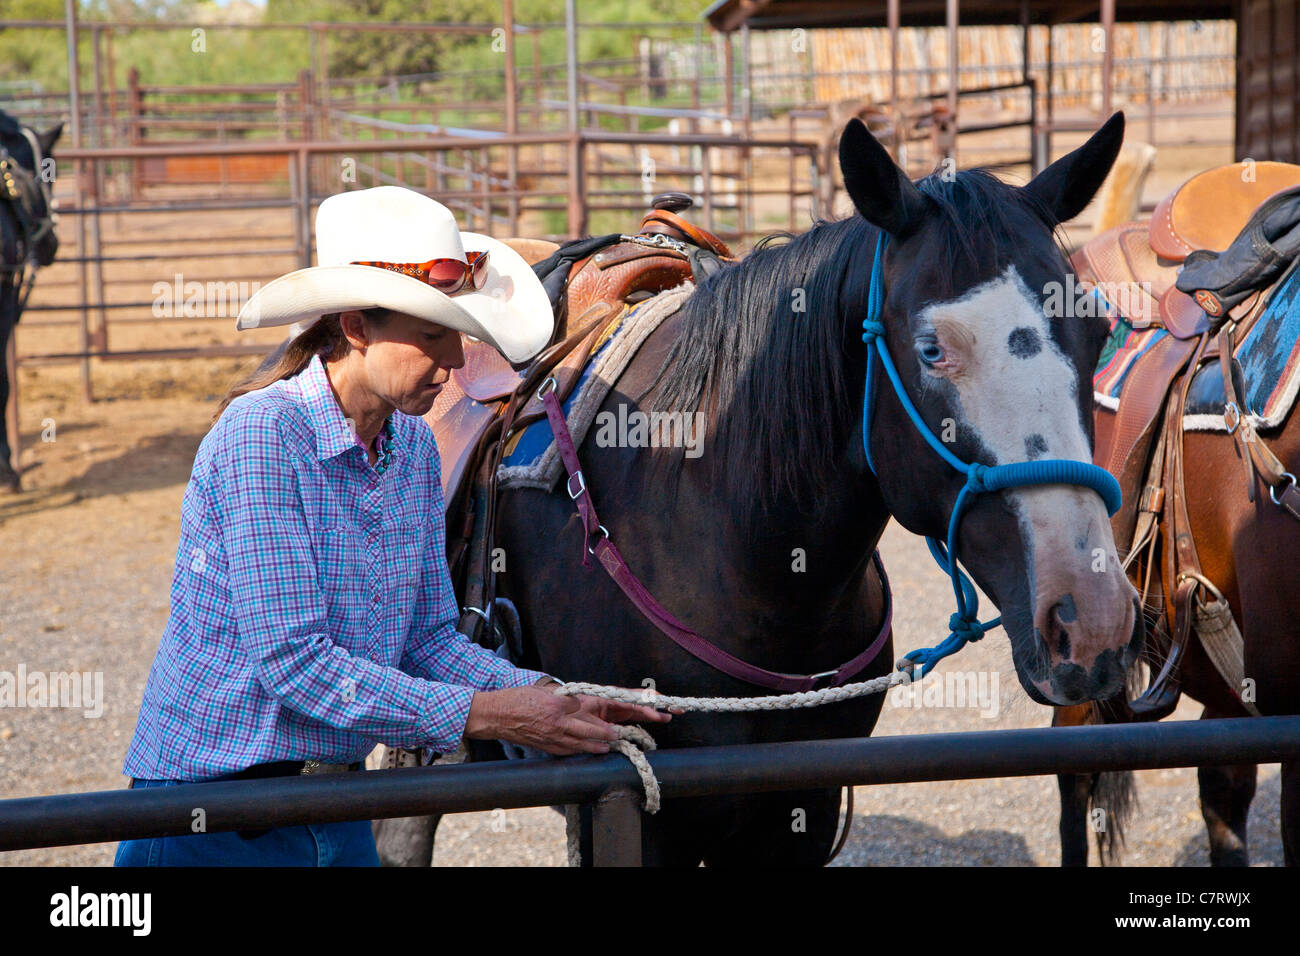 Cowgirl with horse - Stock Image